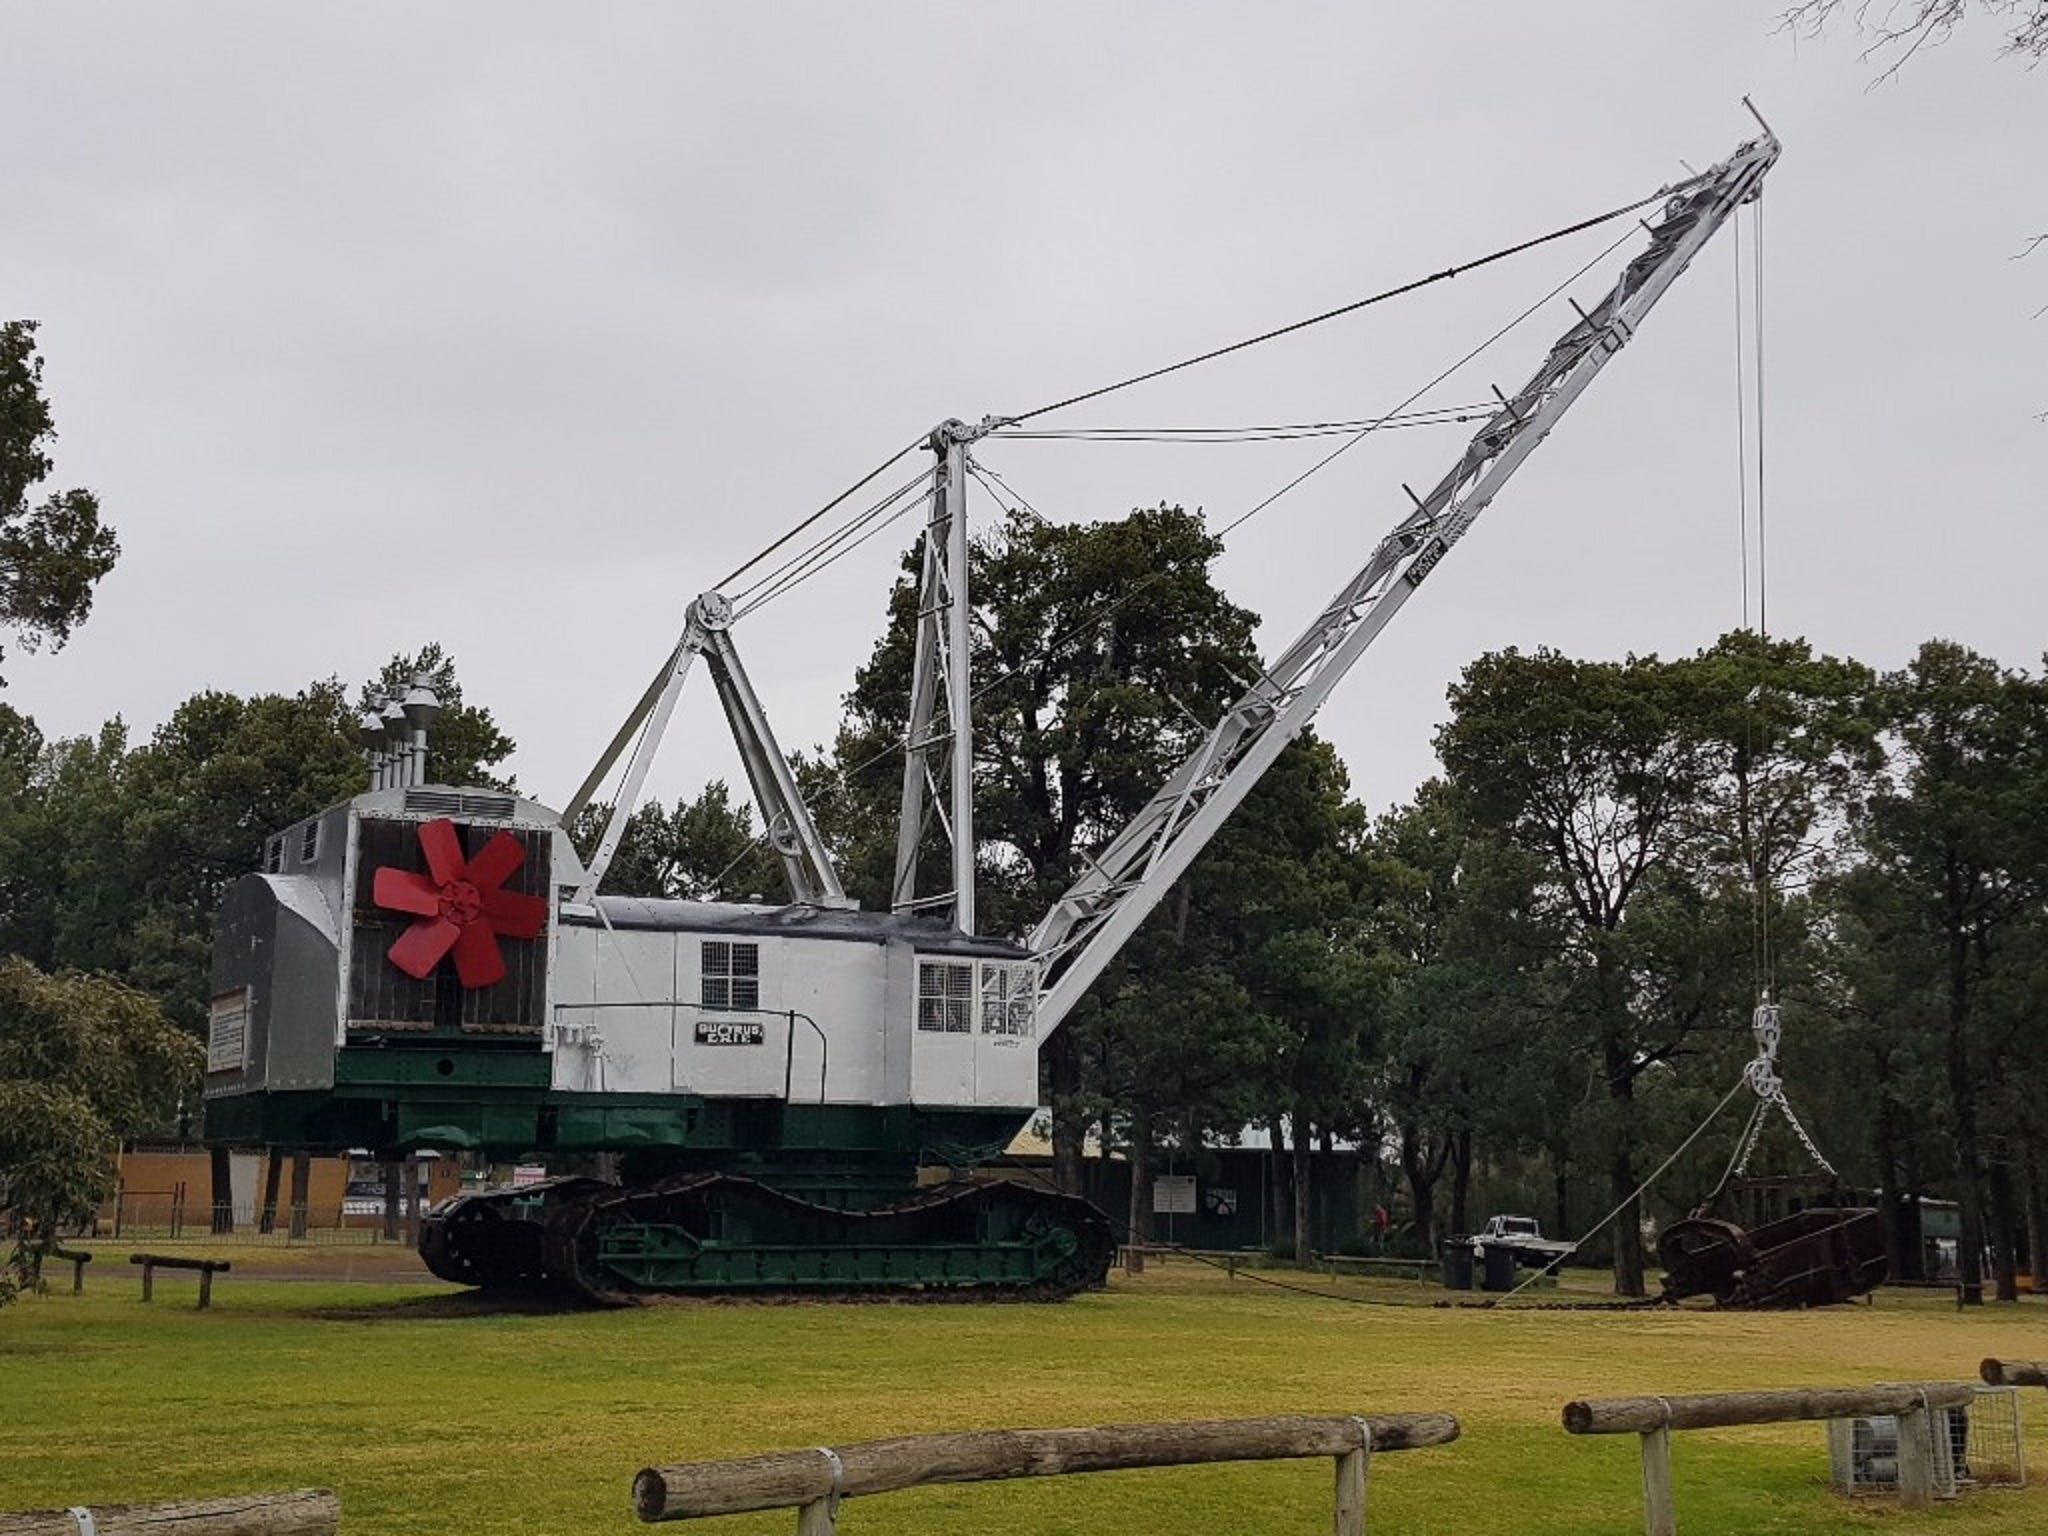 Coleambally Bucyrus Erie Dragline Excavator - Attractions